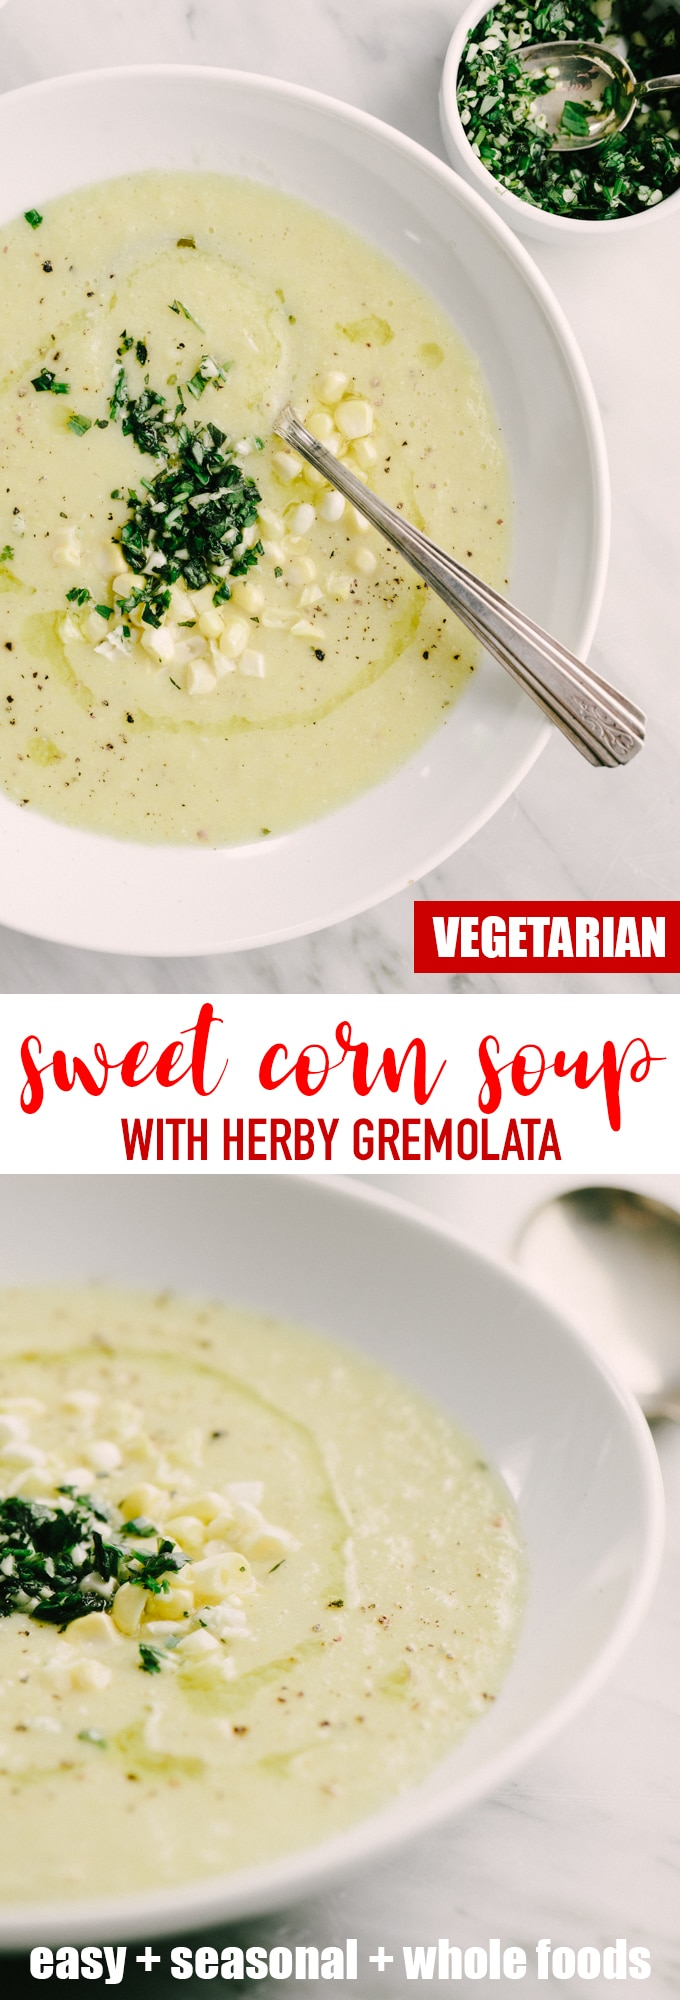 This recipe for sweet corn soup with gremolata captures everything I love about summer - tender sweet corn, fresh savory herbs, bright flavor, and endless nostalgia. It's an easy weeknight meal that is naturally vegetarian and gluten-free. #vegetarian #glutenfree #wholefoods #realfood #soup #summer #corn